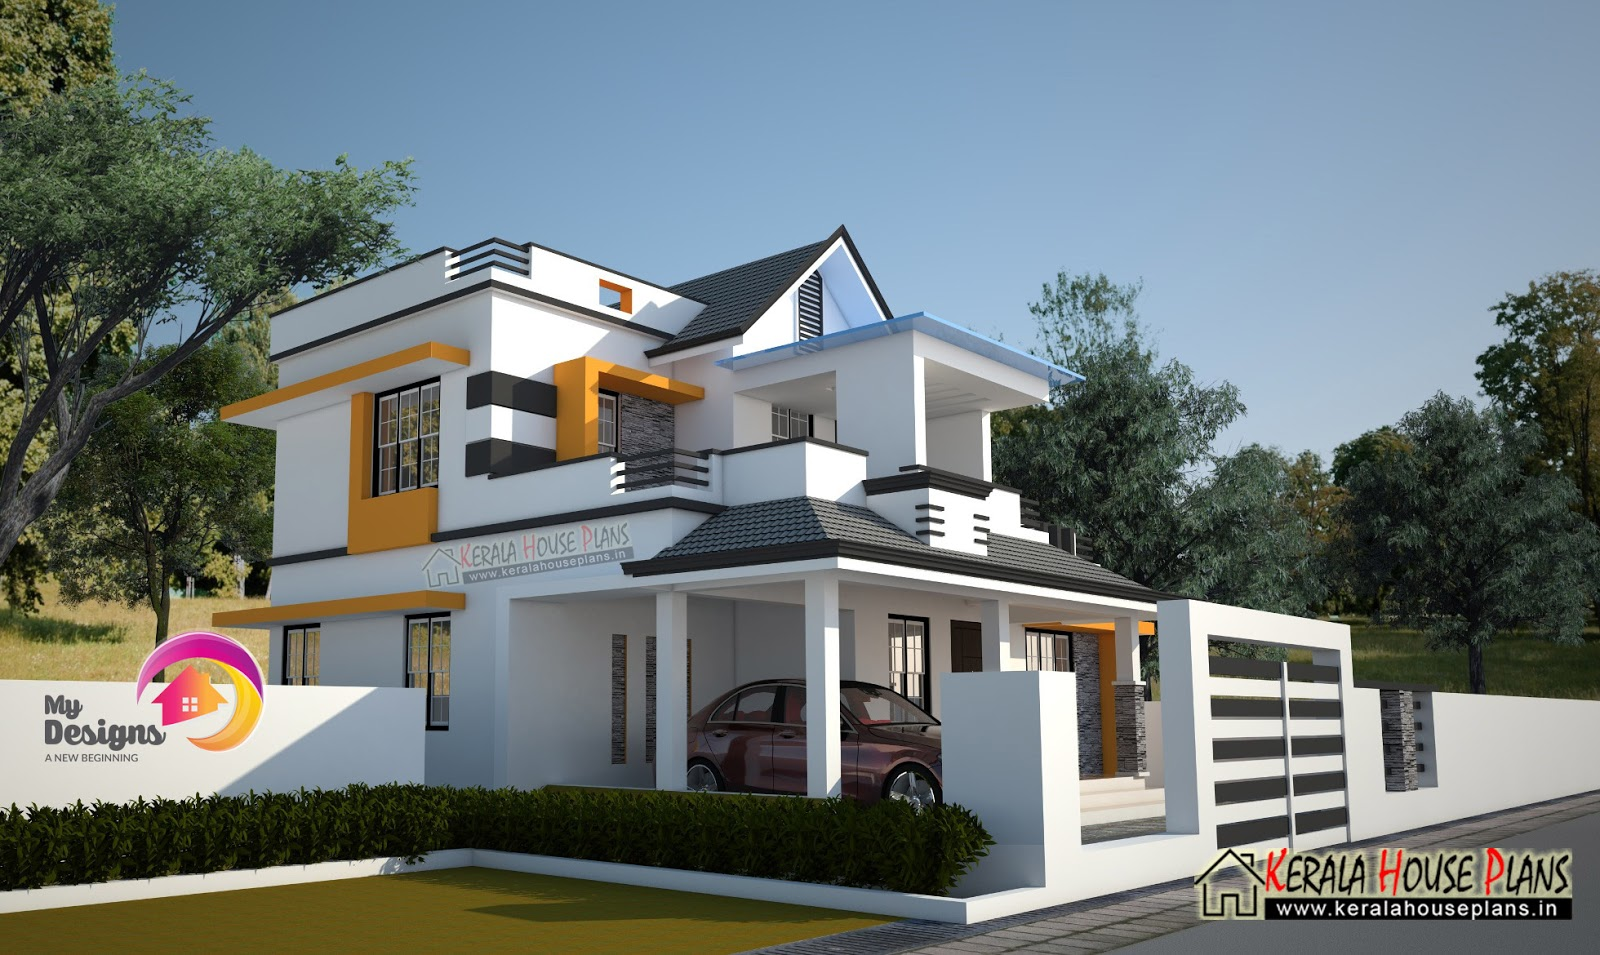 3 bedroom 2 story house design kerala house plans for Kerala home style 3 bedroom